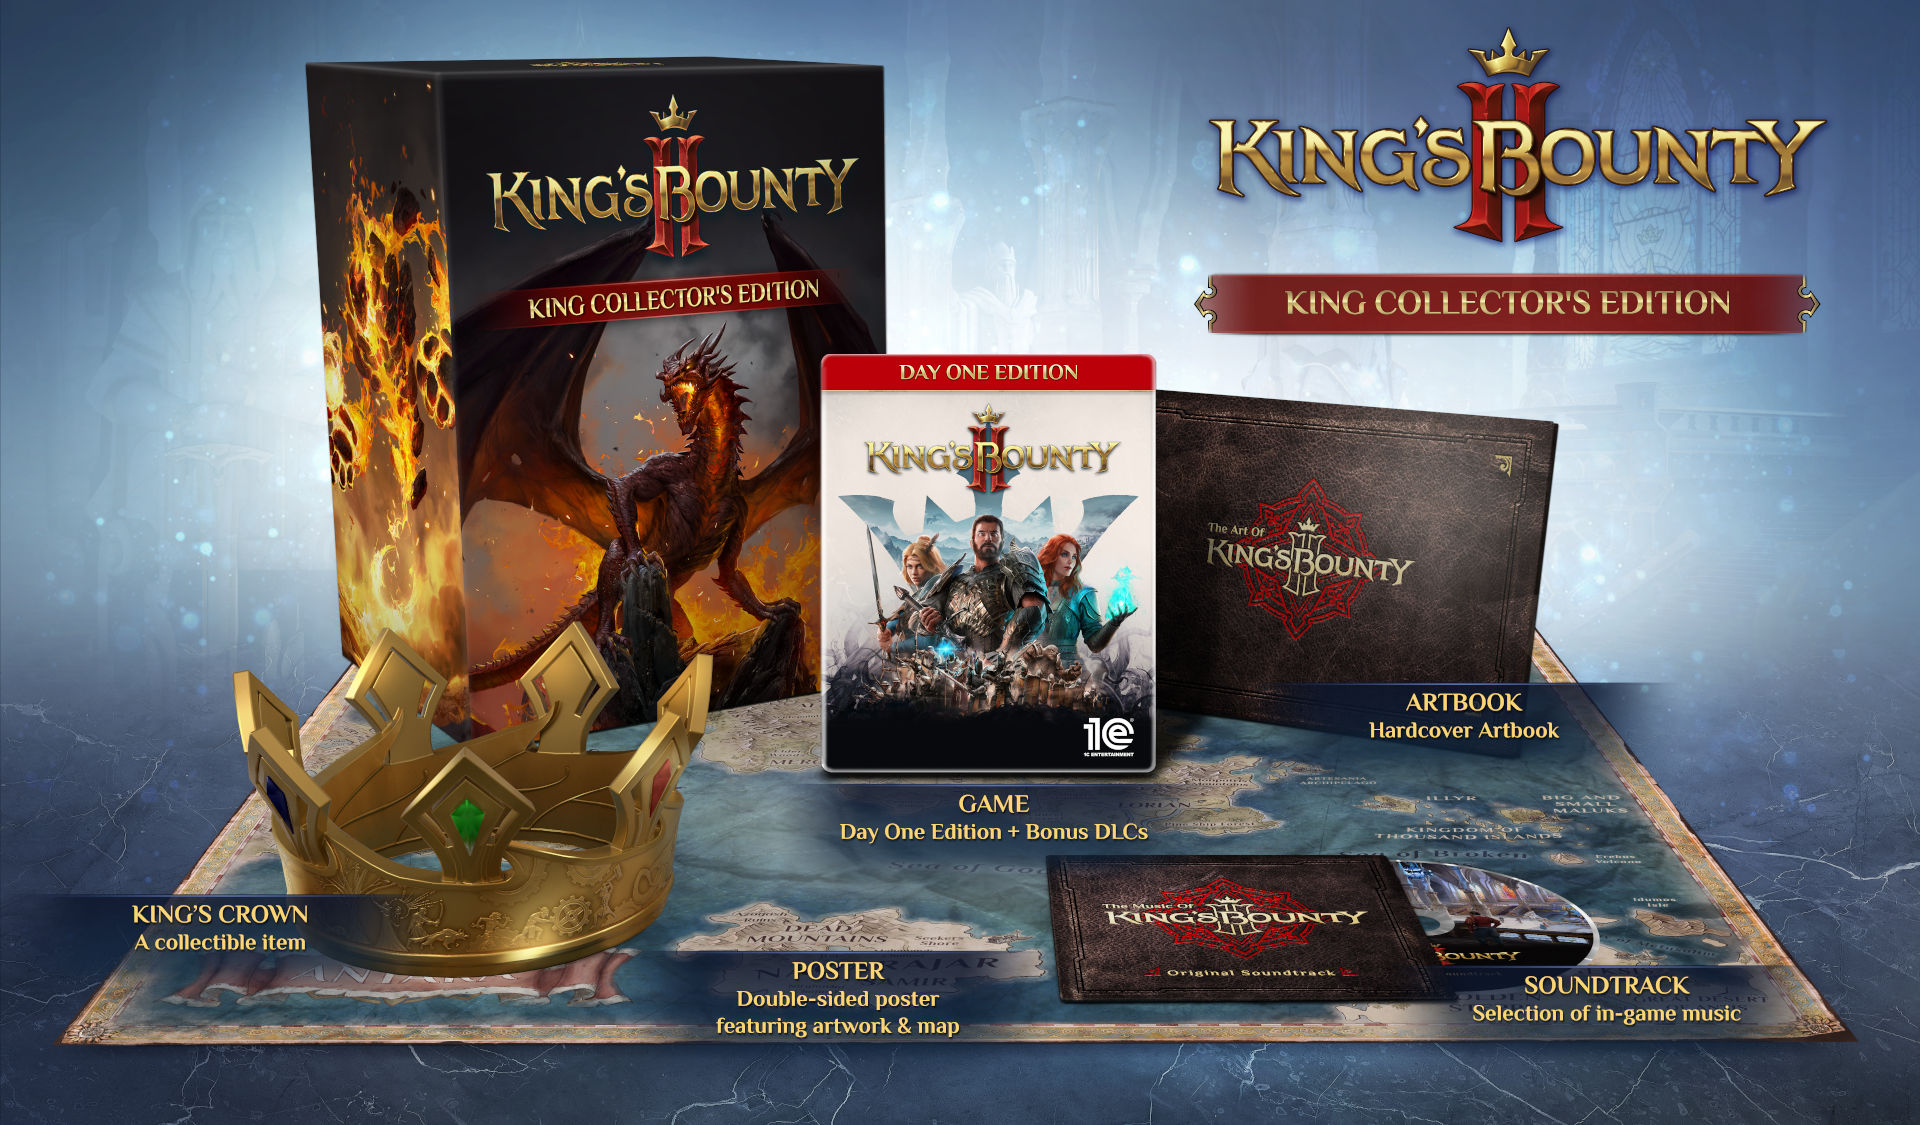 King's Bounty games